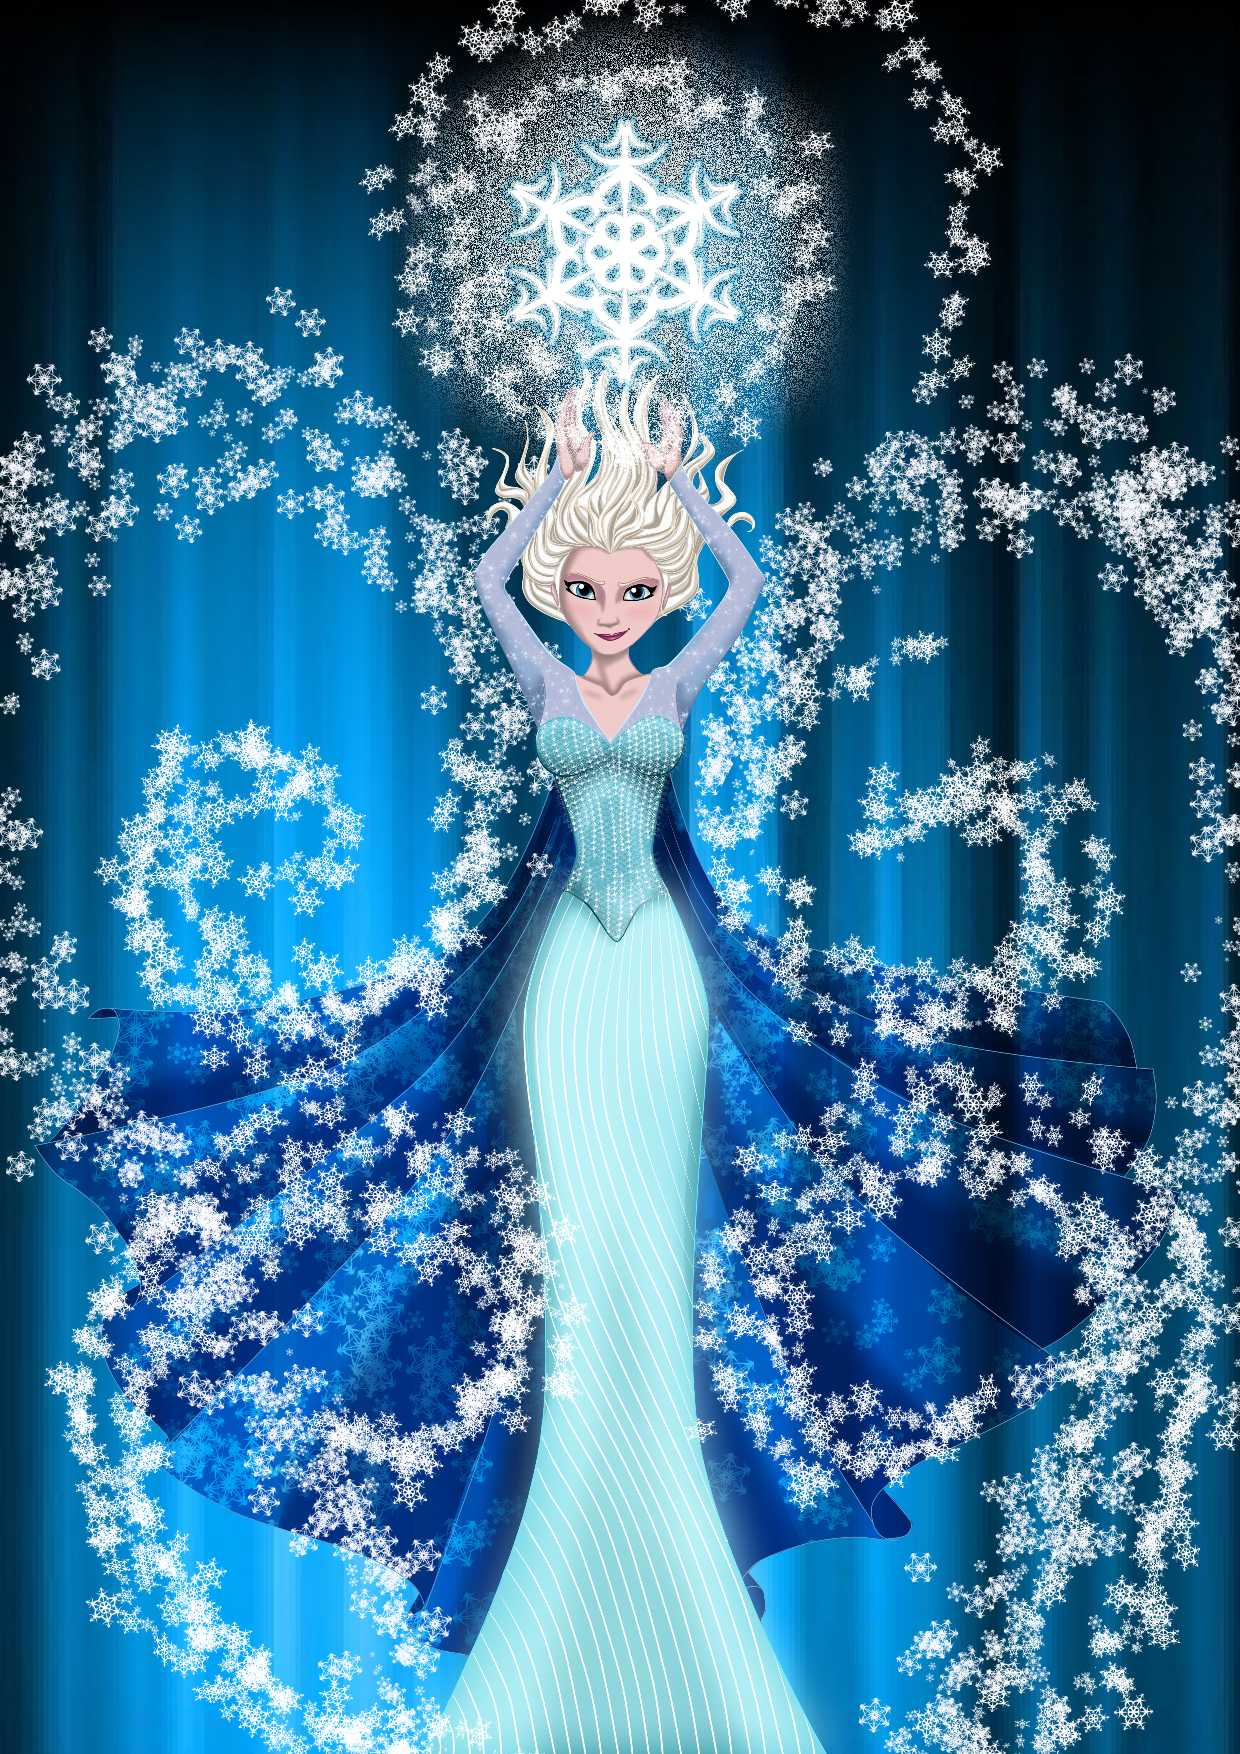 Disney Frozen Elsa Wallpaper in Pixels 1240x1754